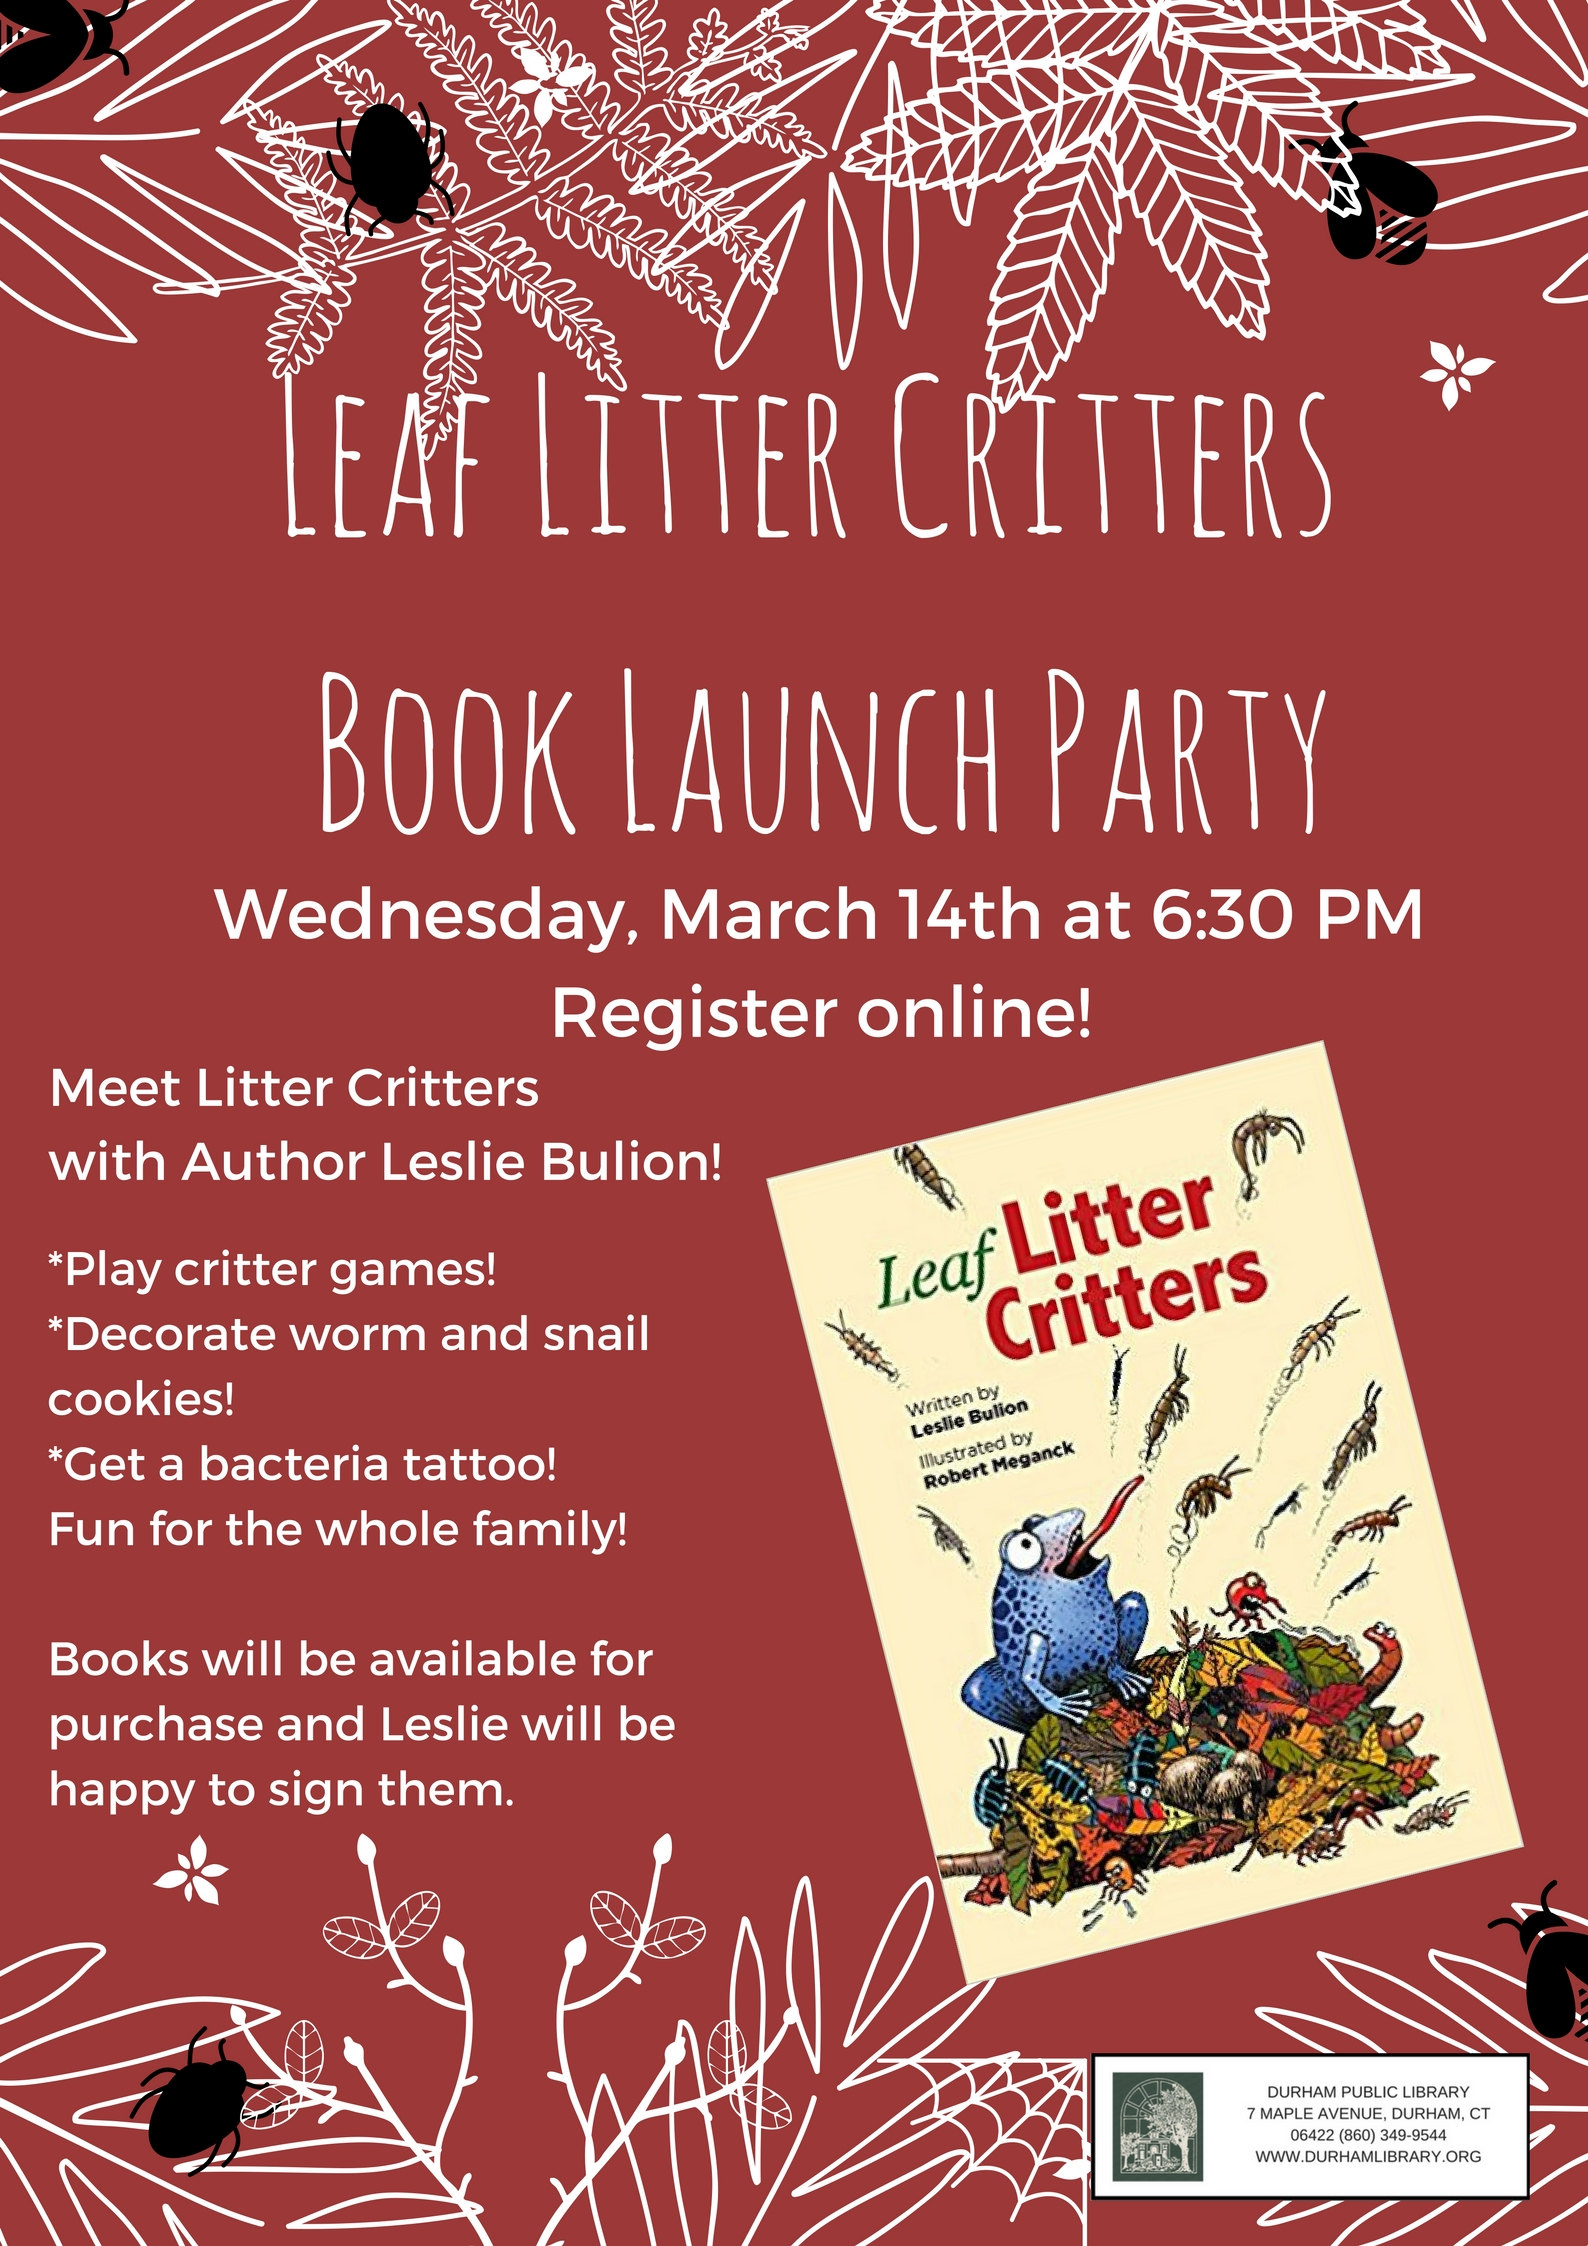 Leaf Litter Critter Book Launch Party Durham Public Library In